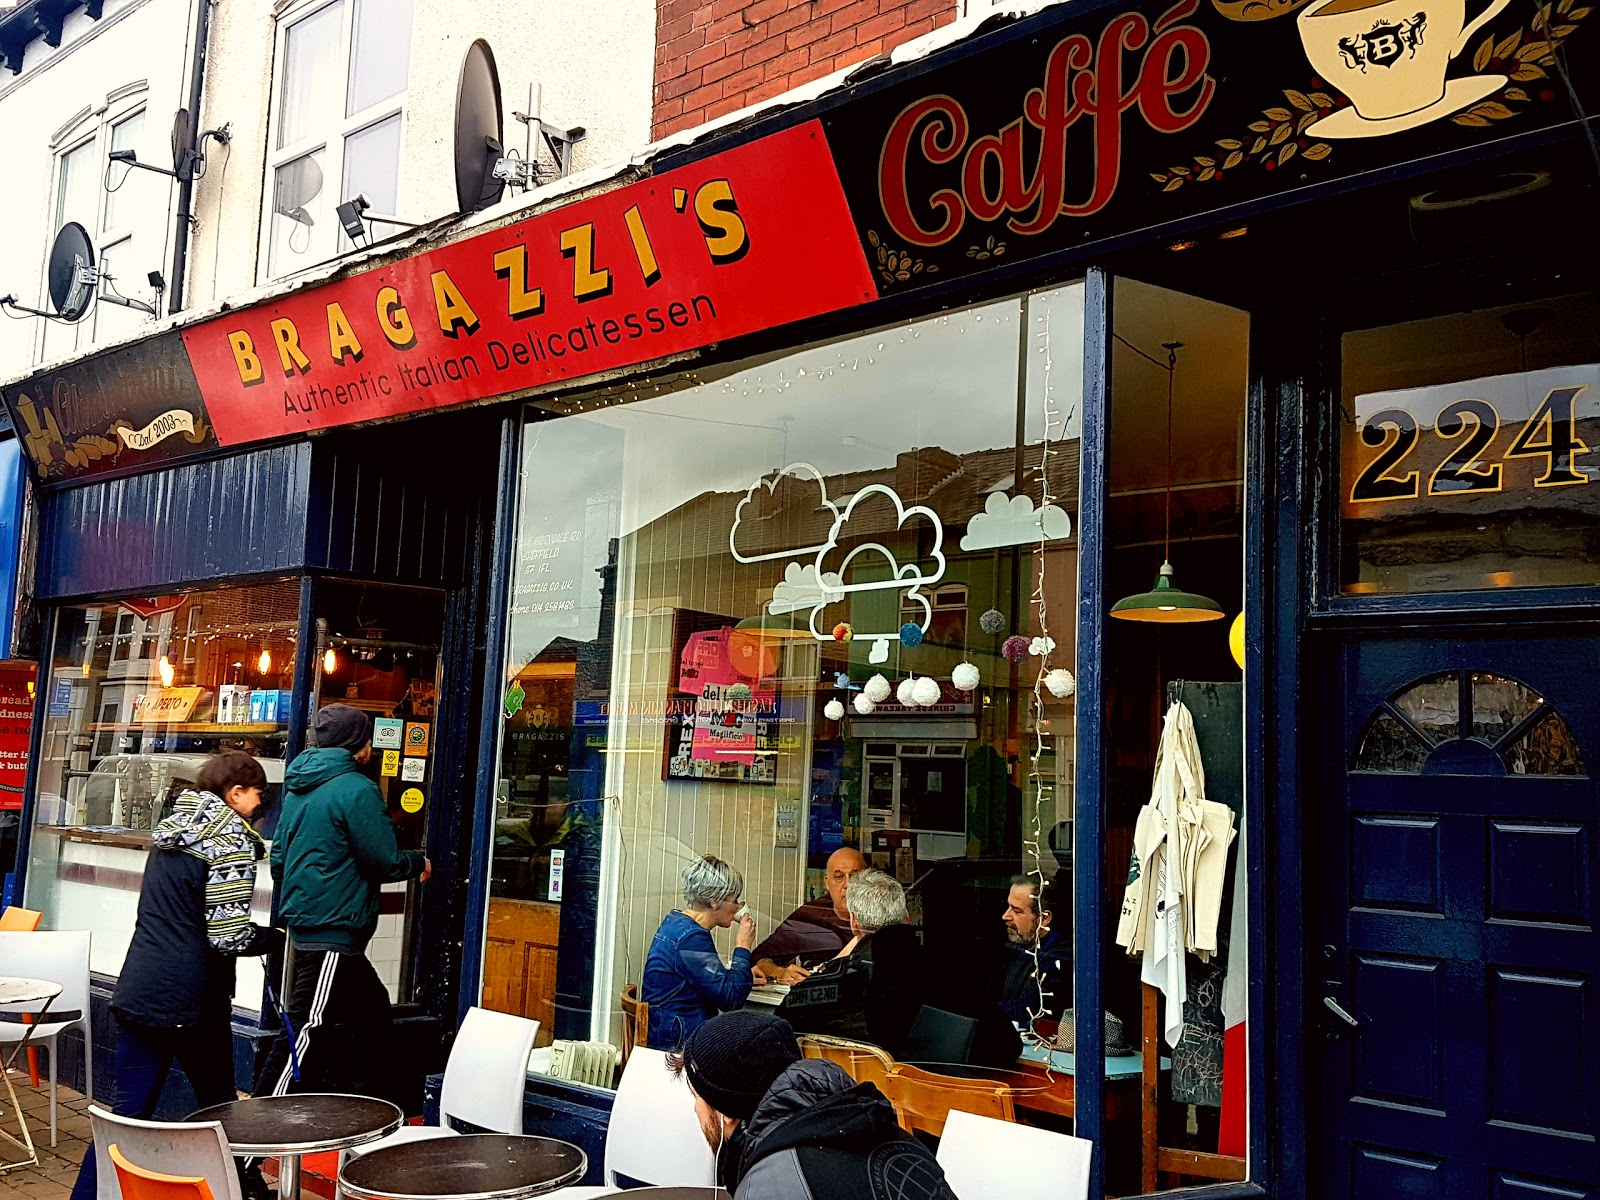 Bragazzis: A Work-Friendly Place in Sheffield